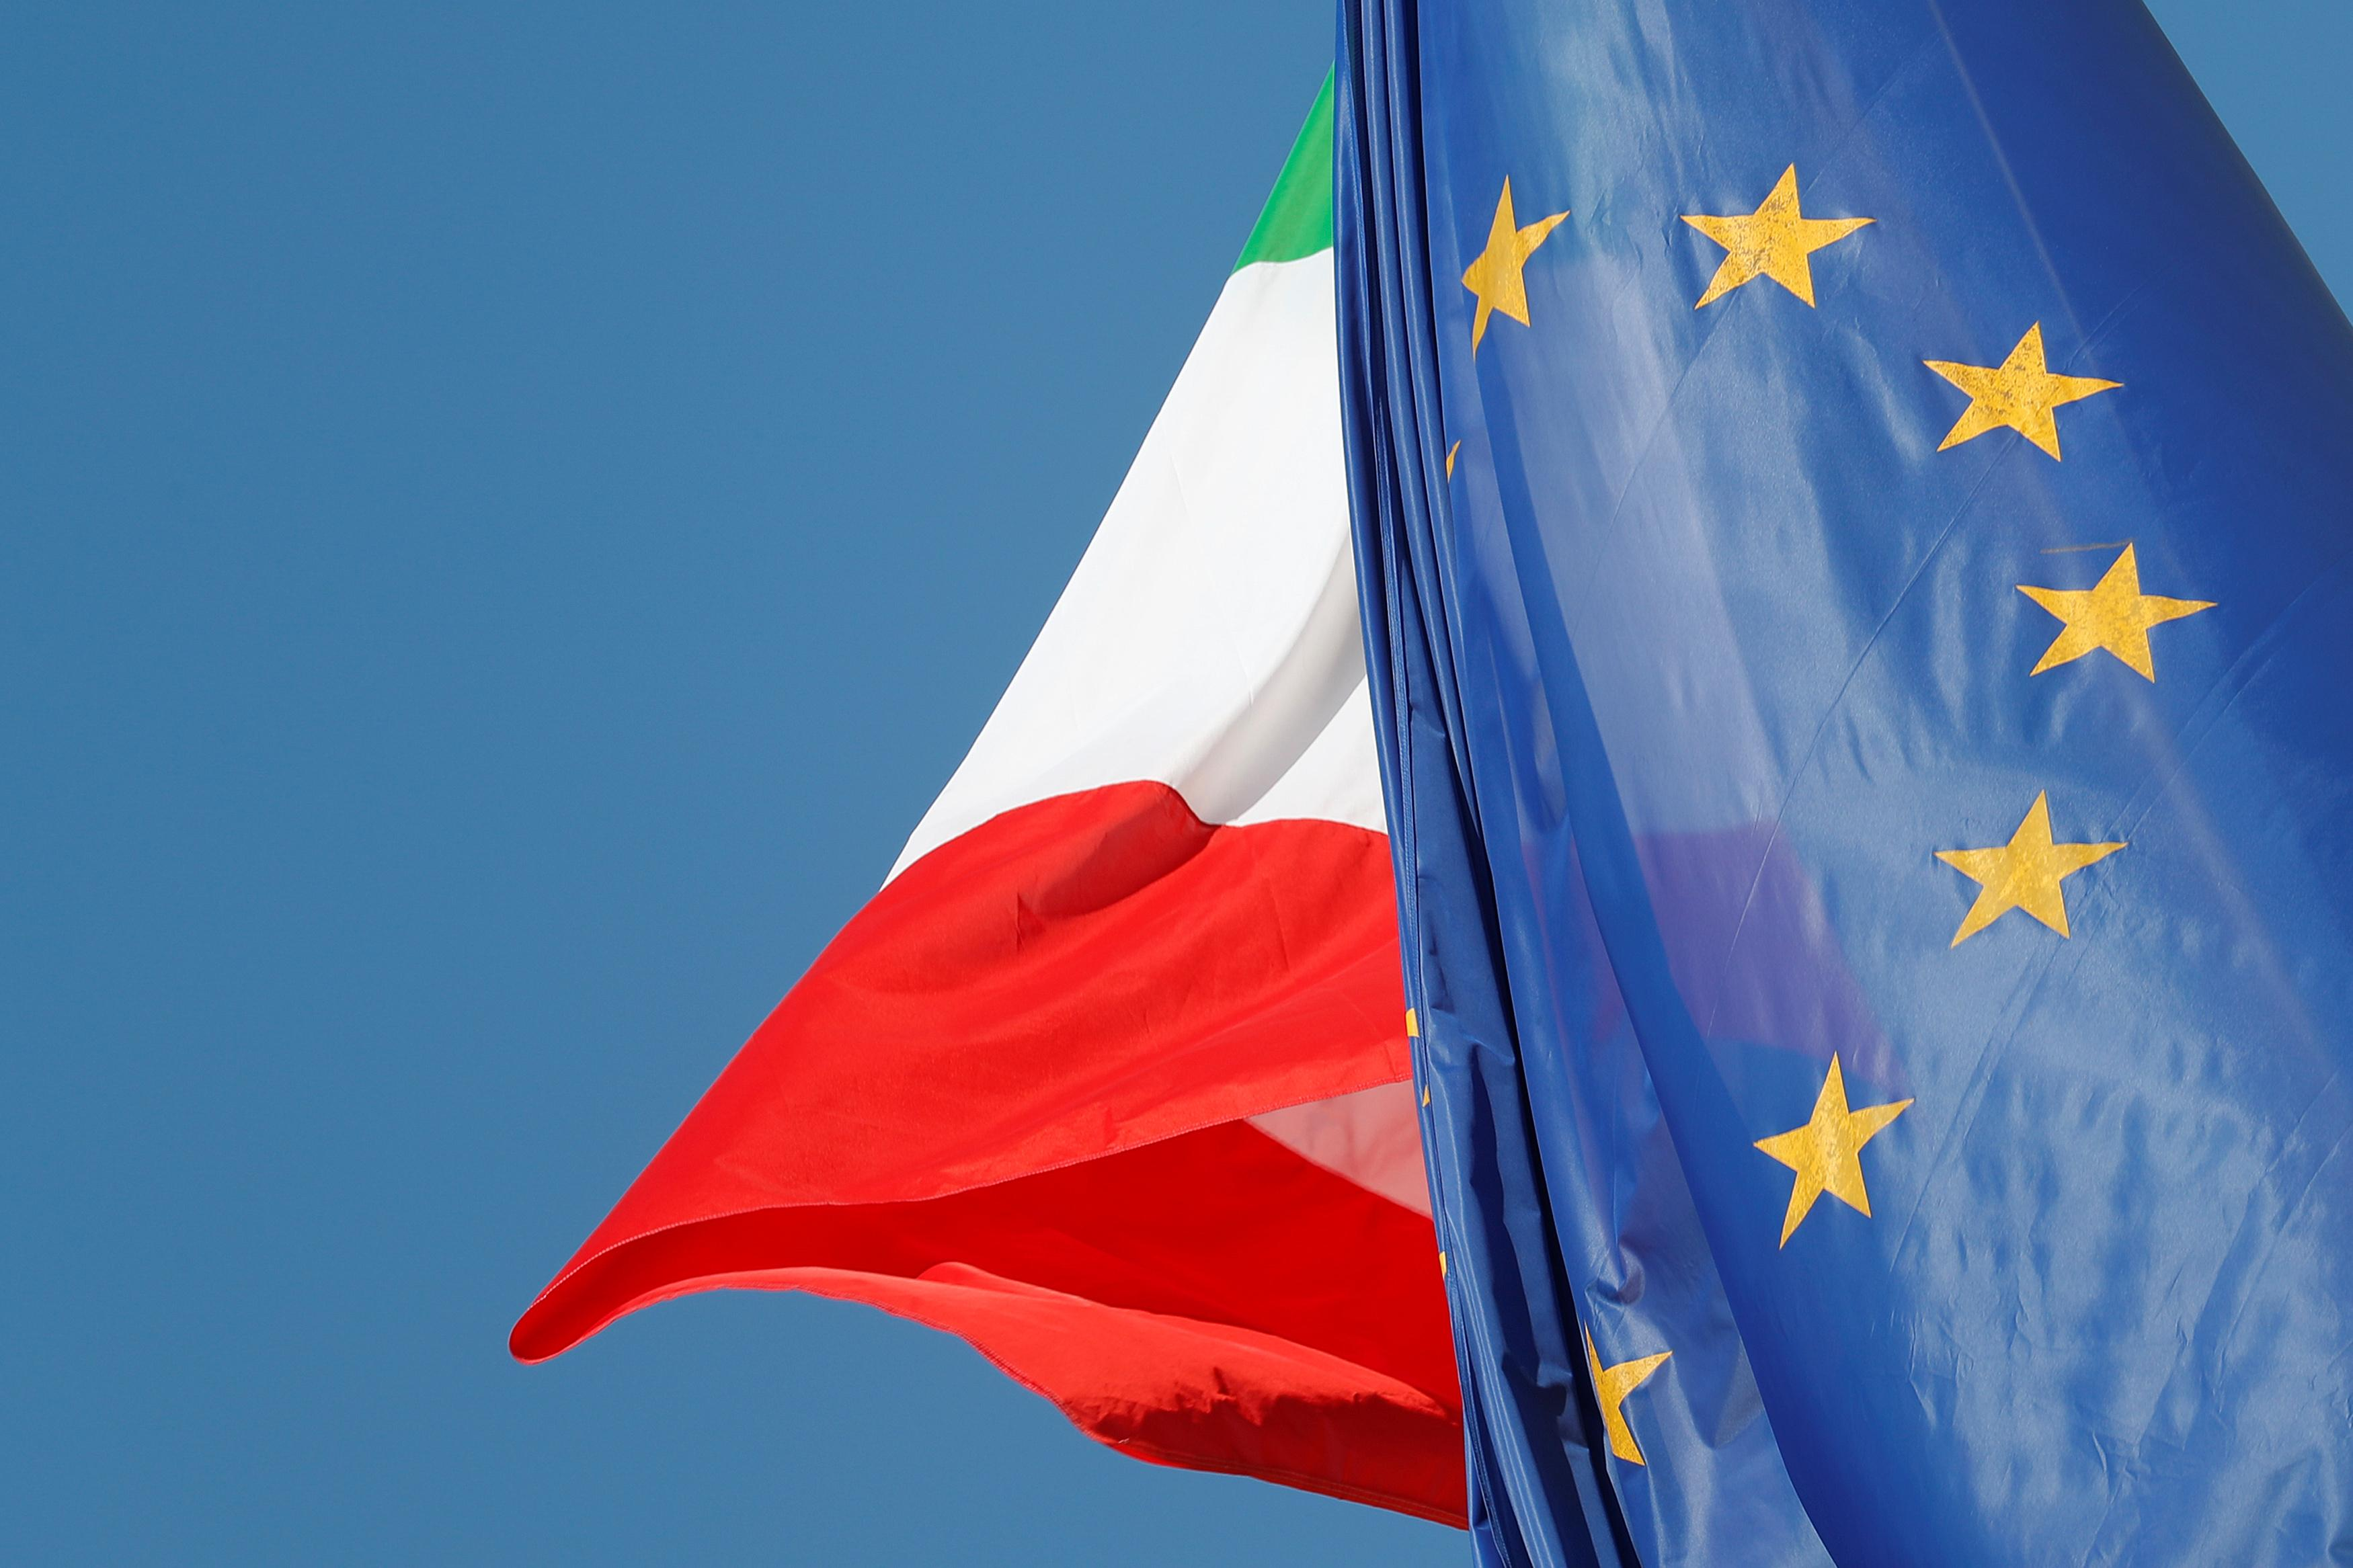 Italy averts EU sanction threat over its debt after last-minute offer